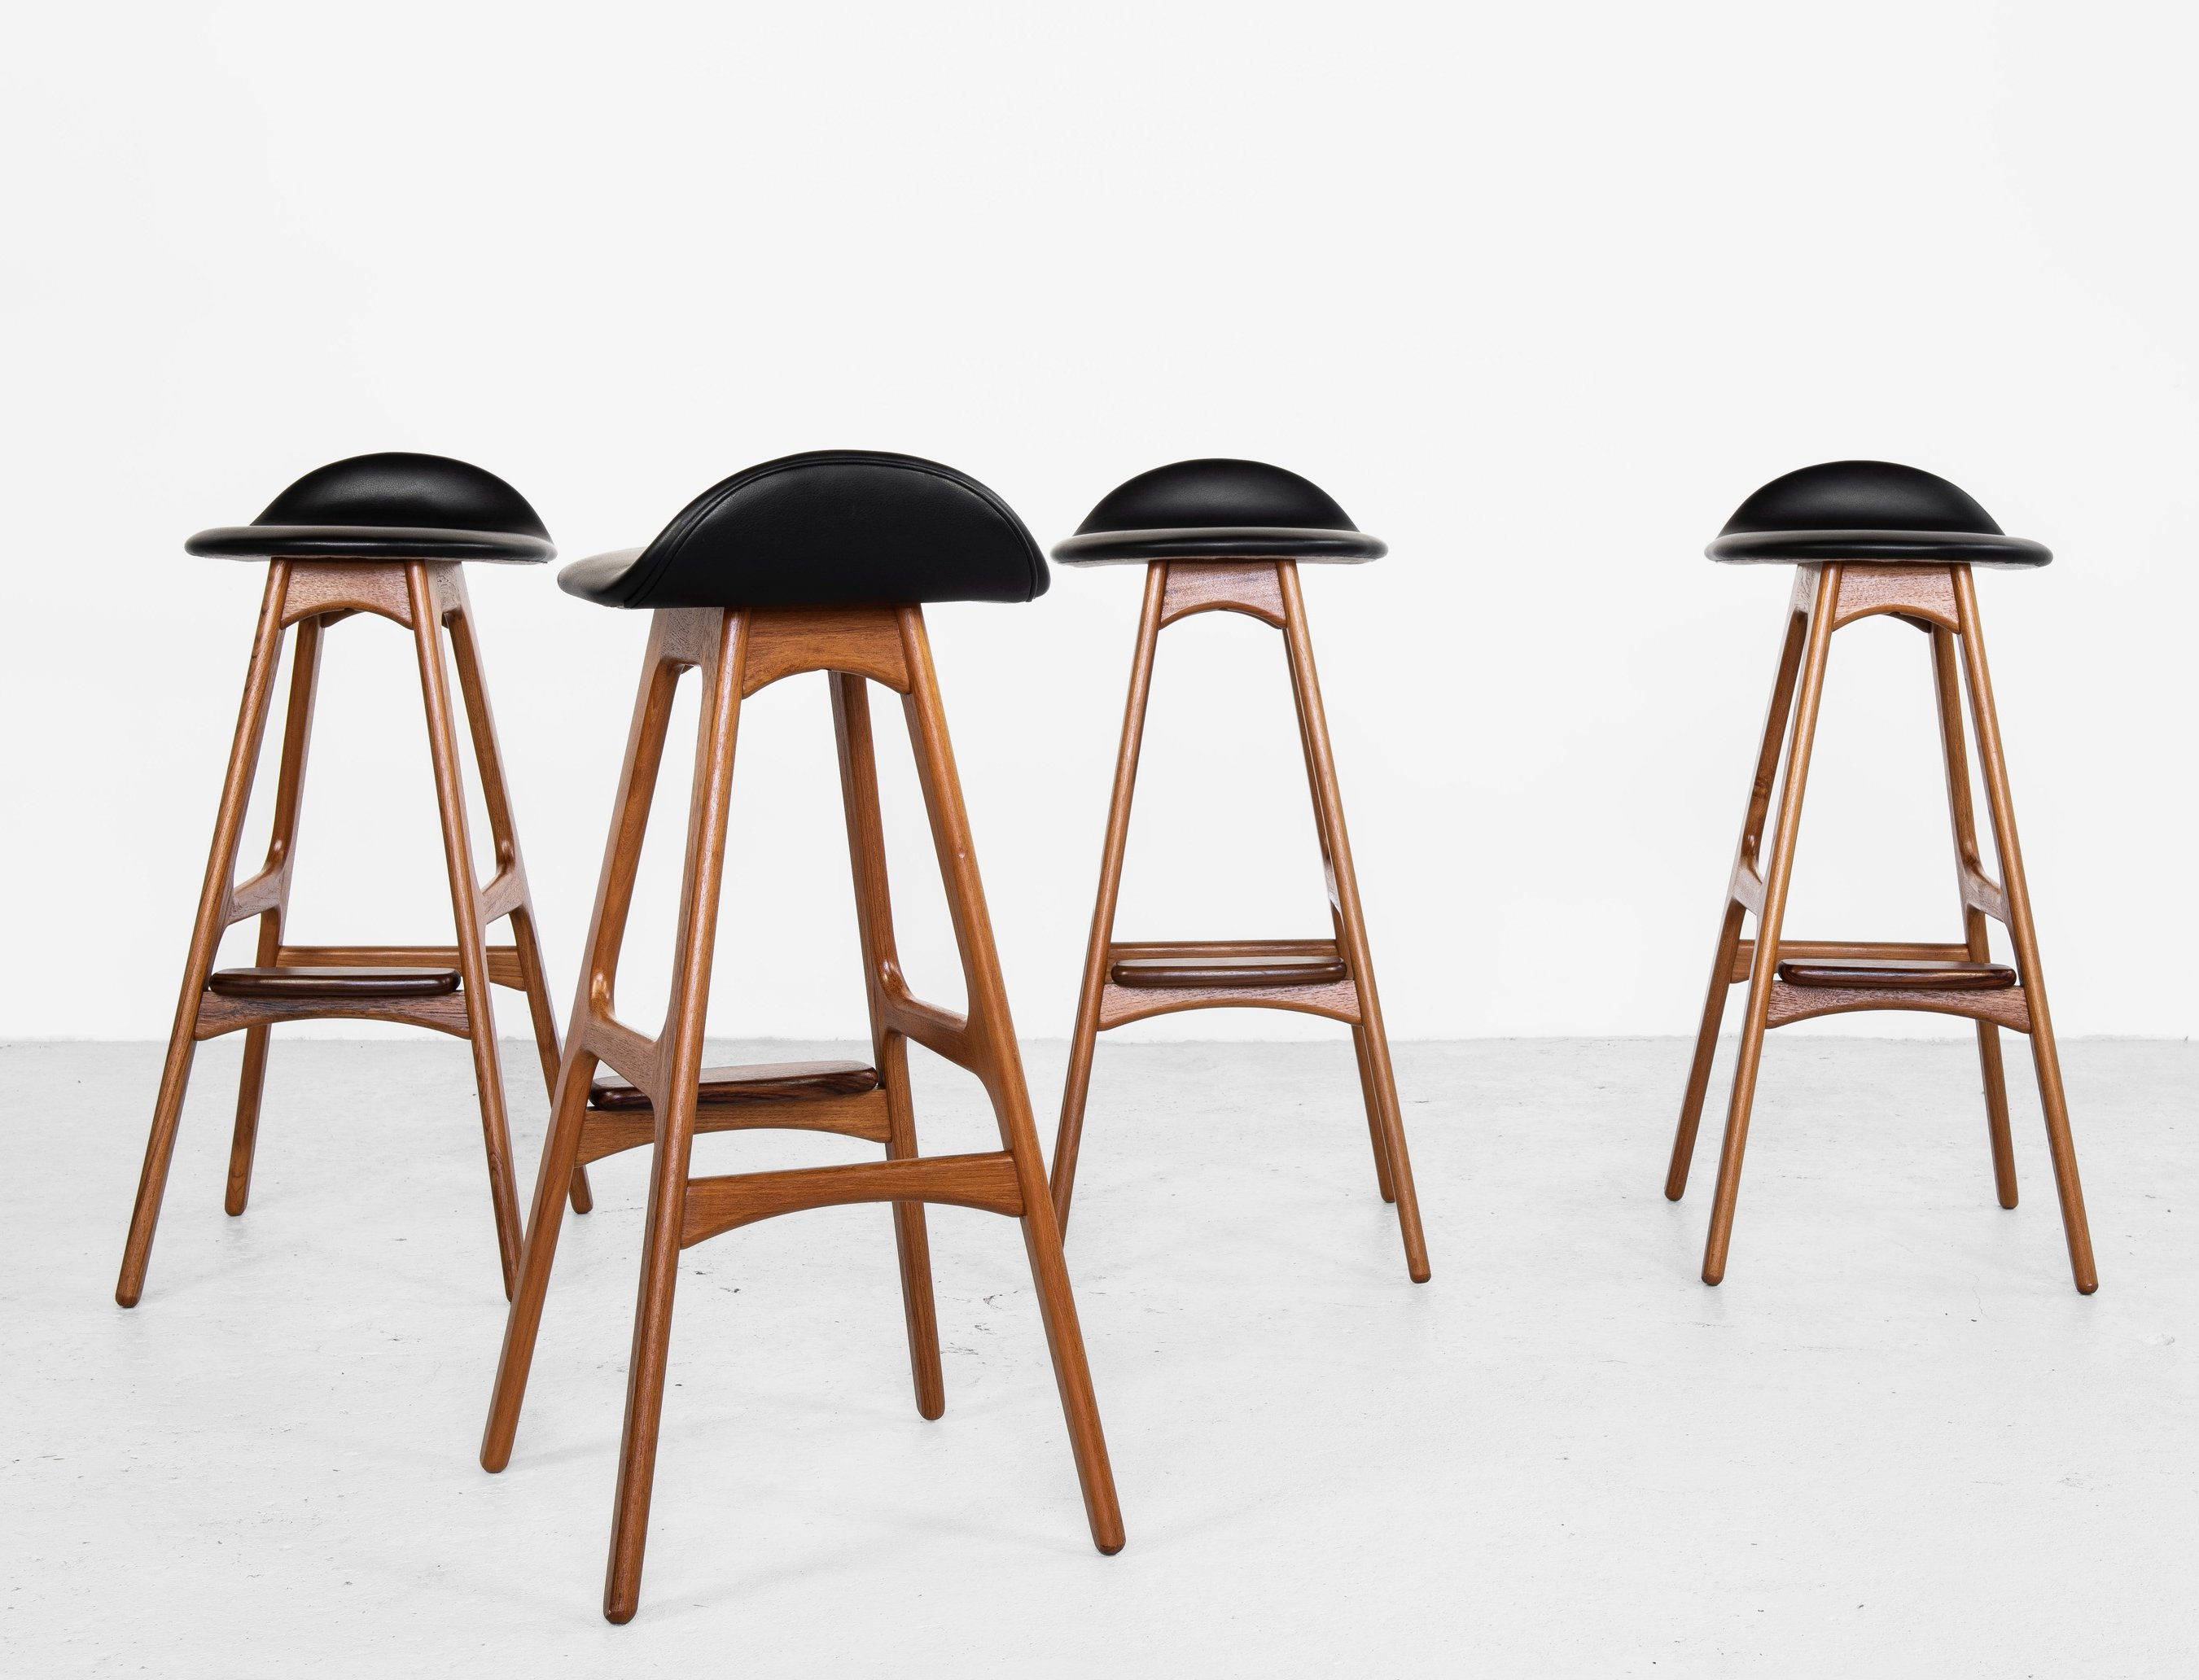 Picture of: Midcentury Danish Set Of 4 Bar Stools In Teak Leather By Erik Buch For O D Mobler 1960s 139223